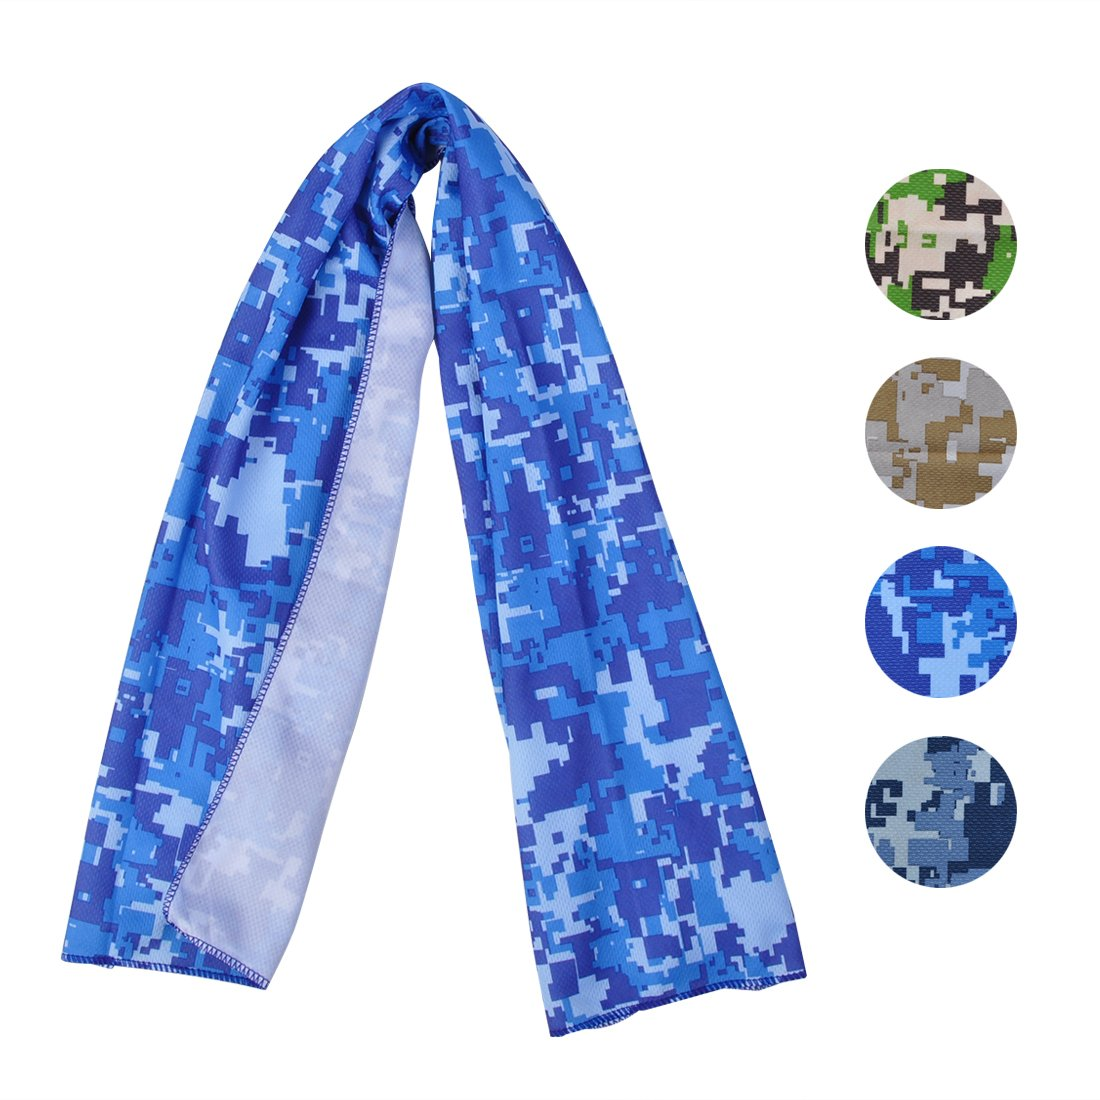 Cooling Towel for Sports, Workout, Fitness, Gym, Yoga, Pilates, Travel, Camping & More, Ice Cold, Camouflage, Multi Colors (CAM-SkyBlue)